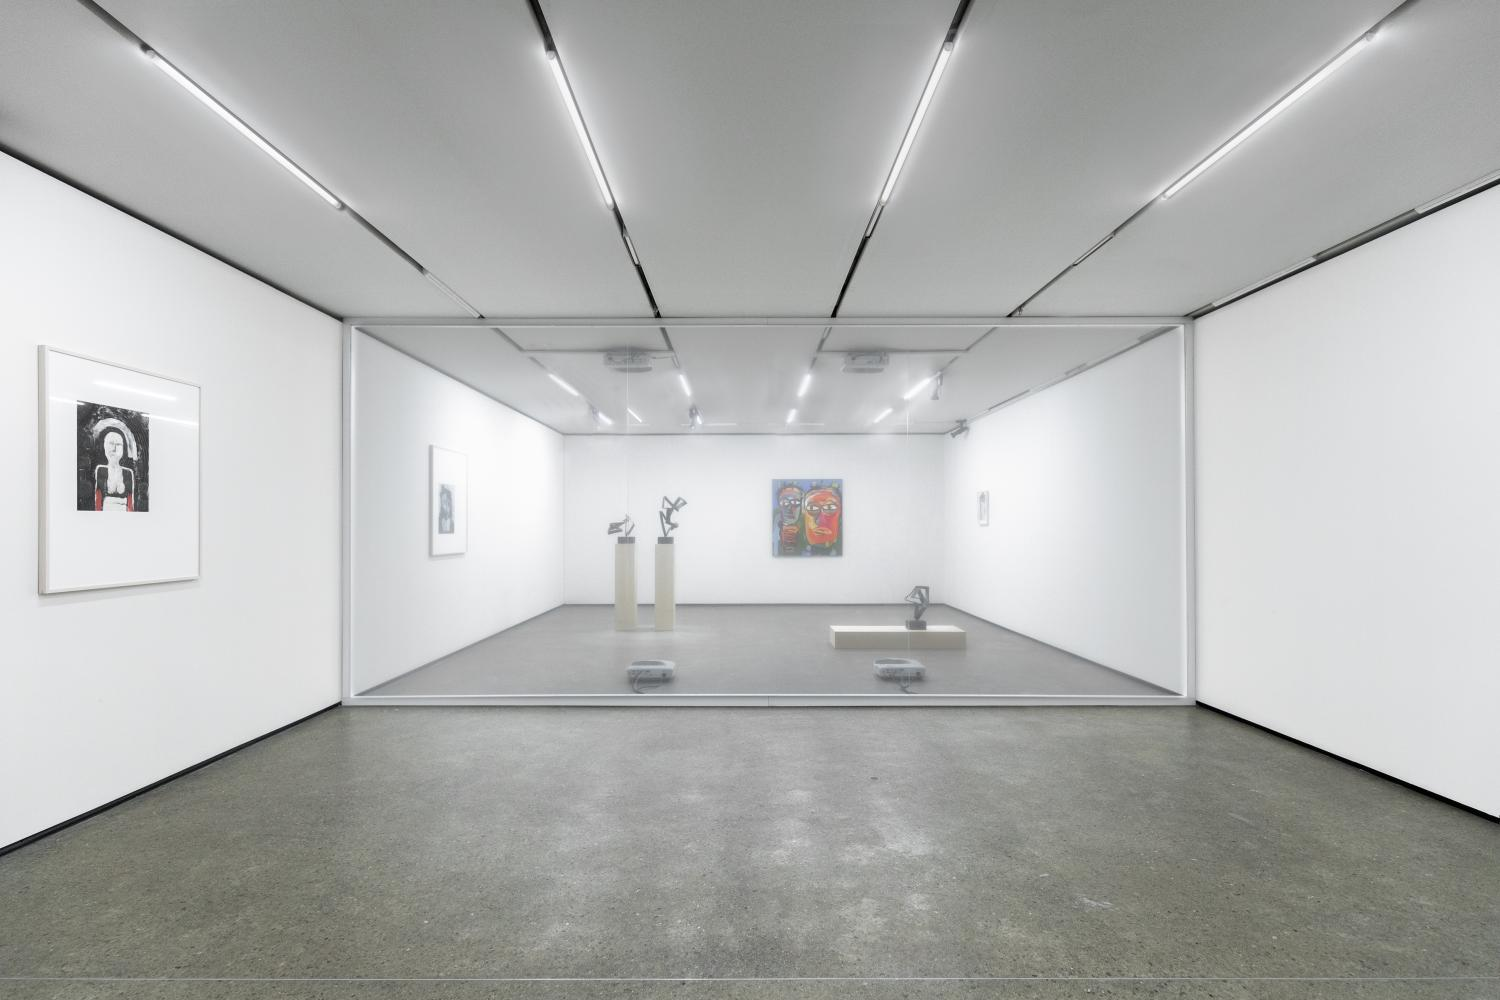 Christopher Kulendran Thomas in collaboration with Annika Kuhlmann, Being Human, 2019, Digital projection on acrylic. Installation View, Time, Forward